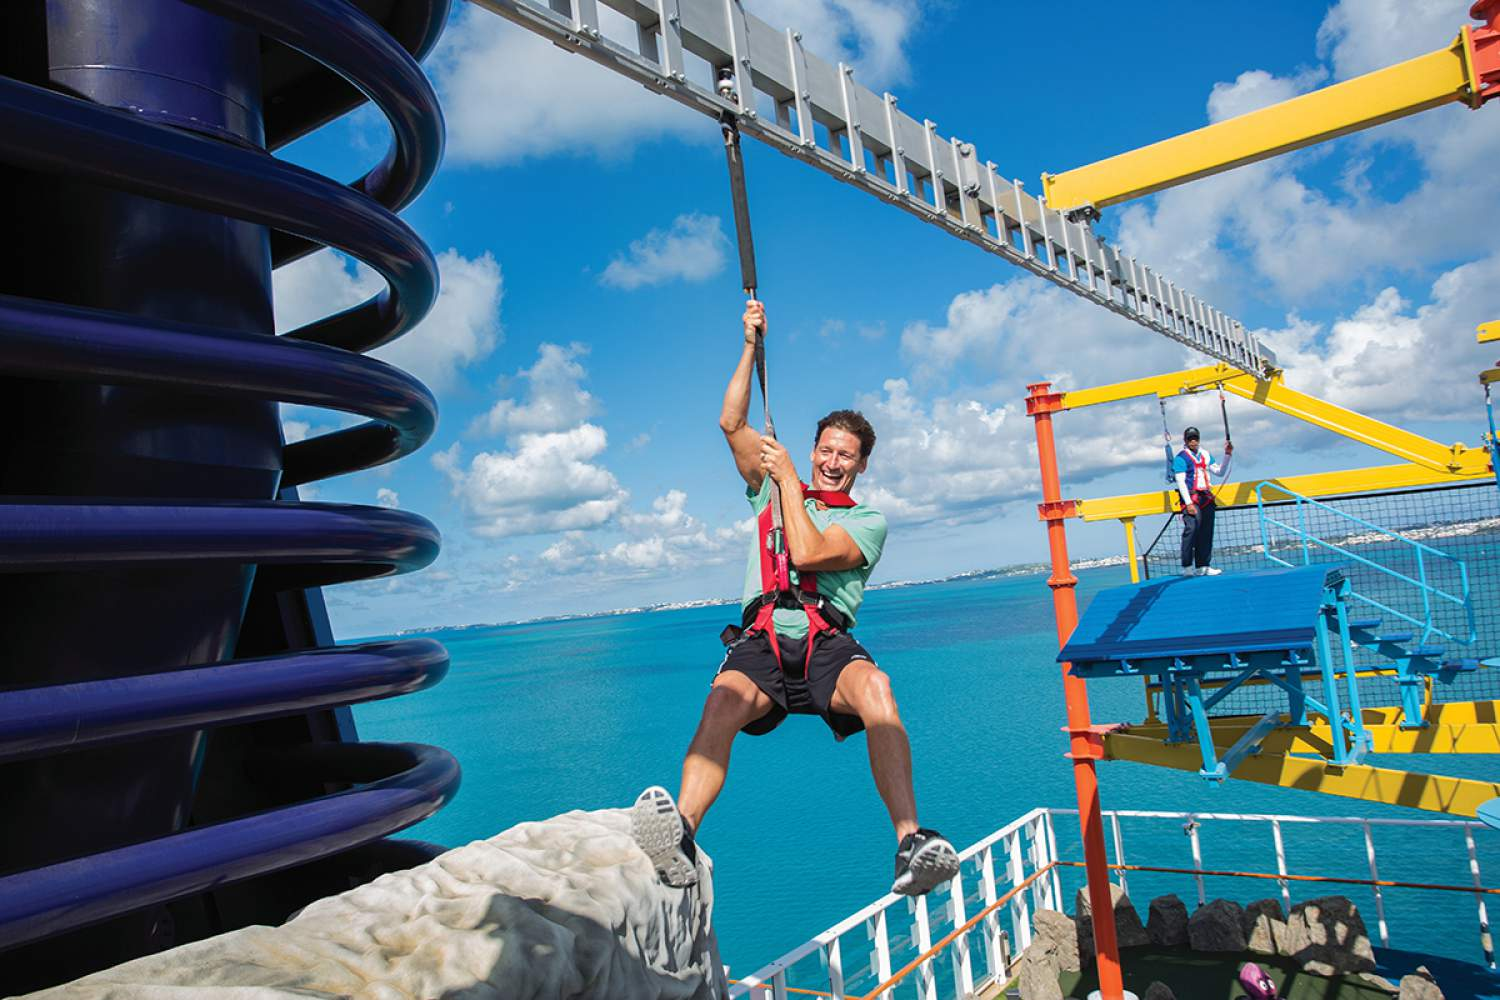 Ziplining on the Norwegian cruise